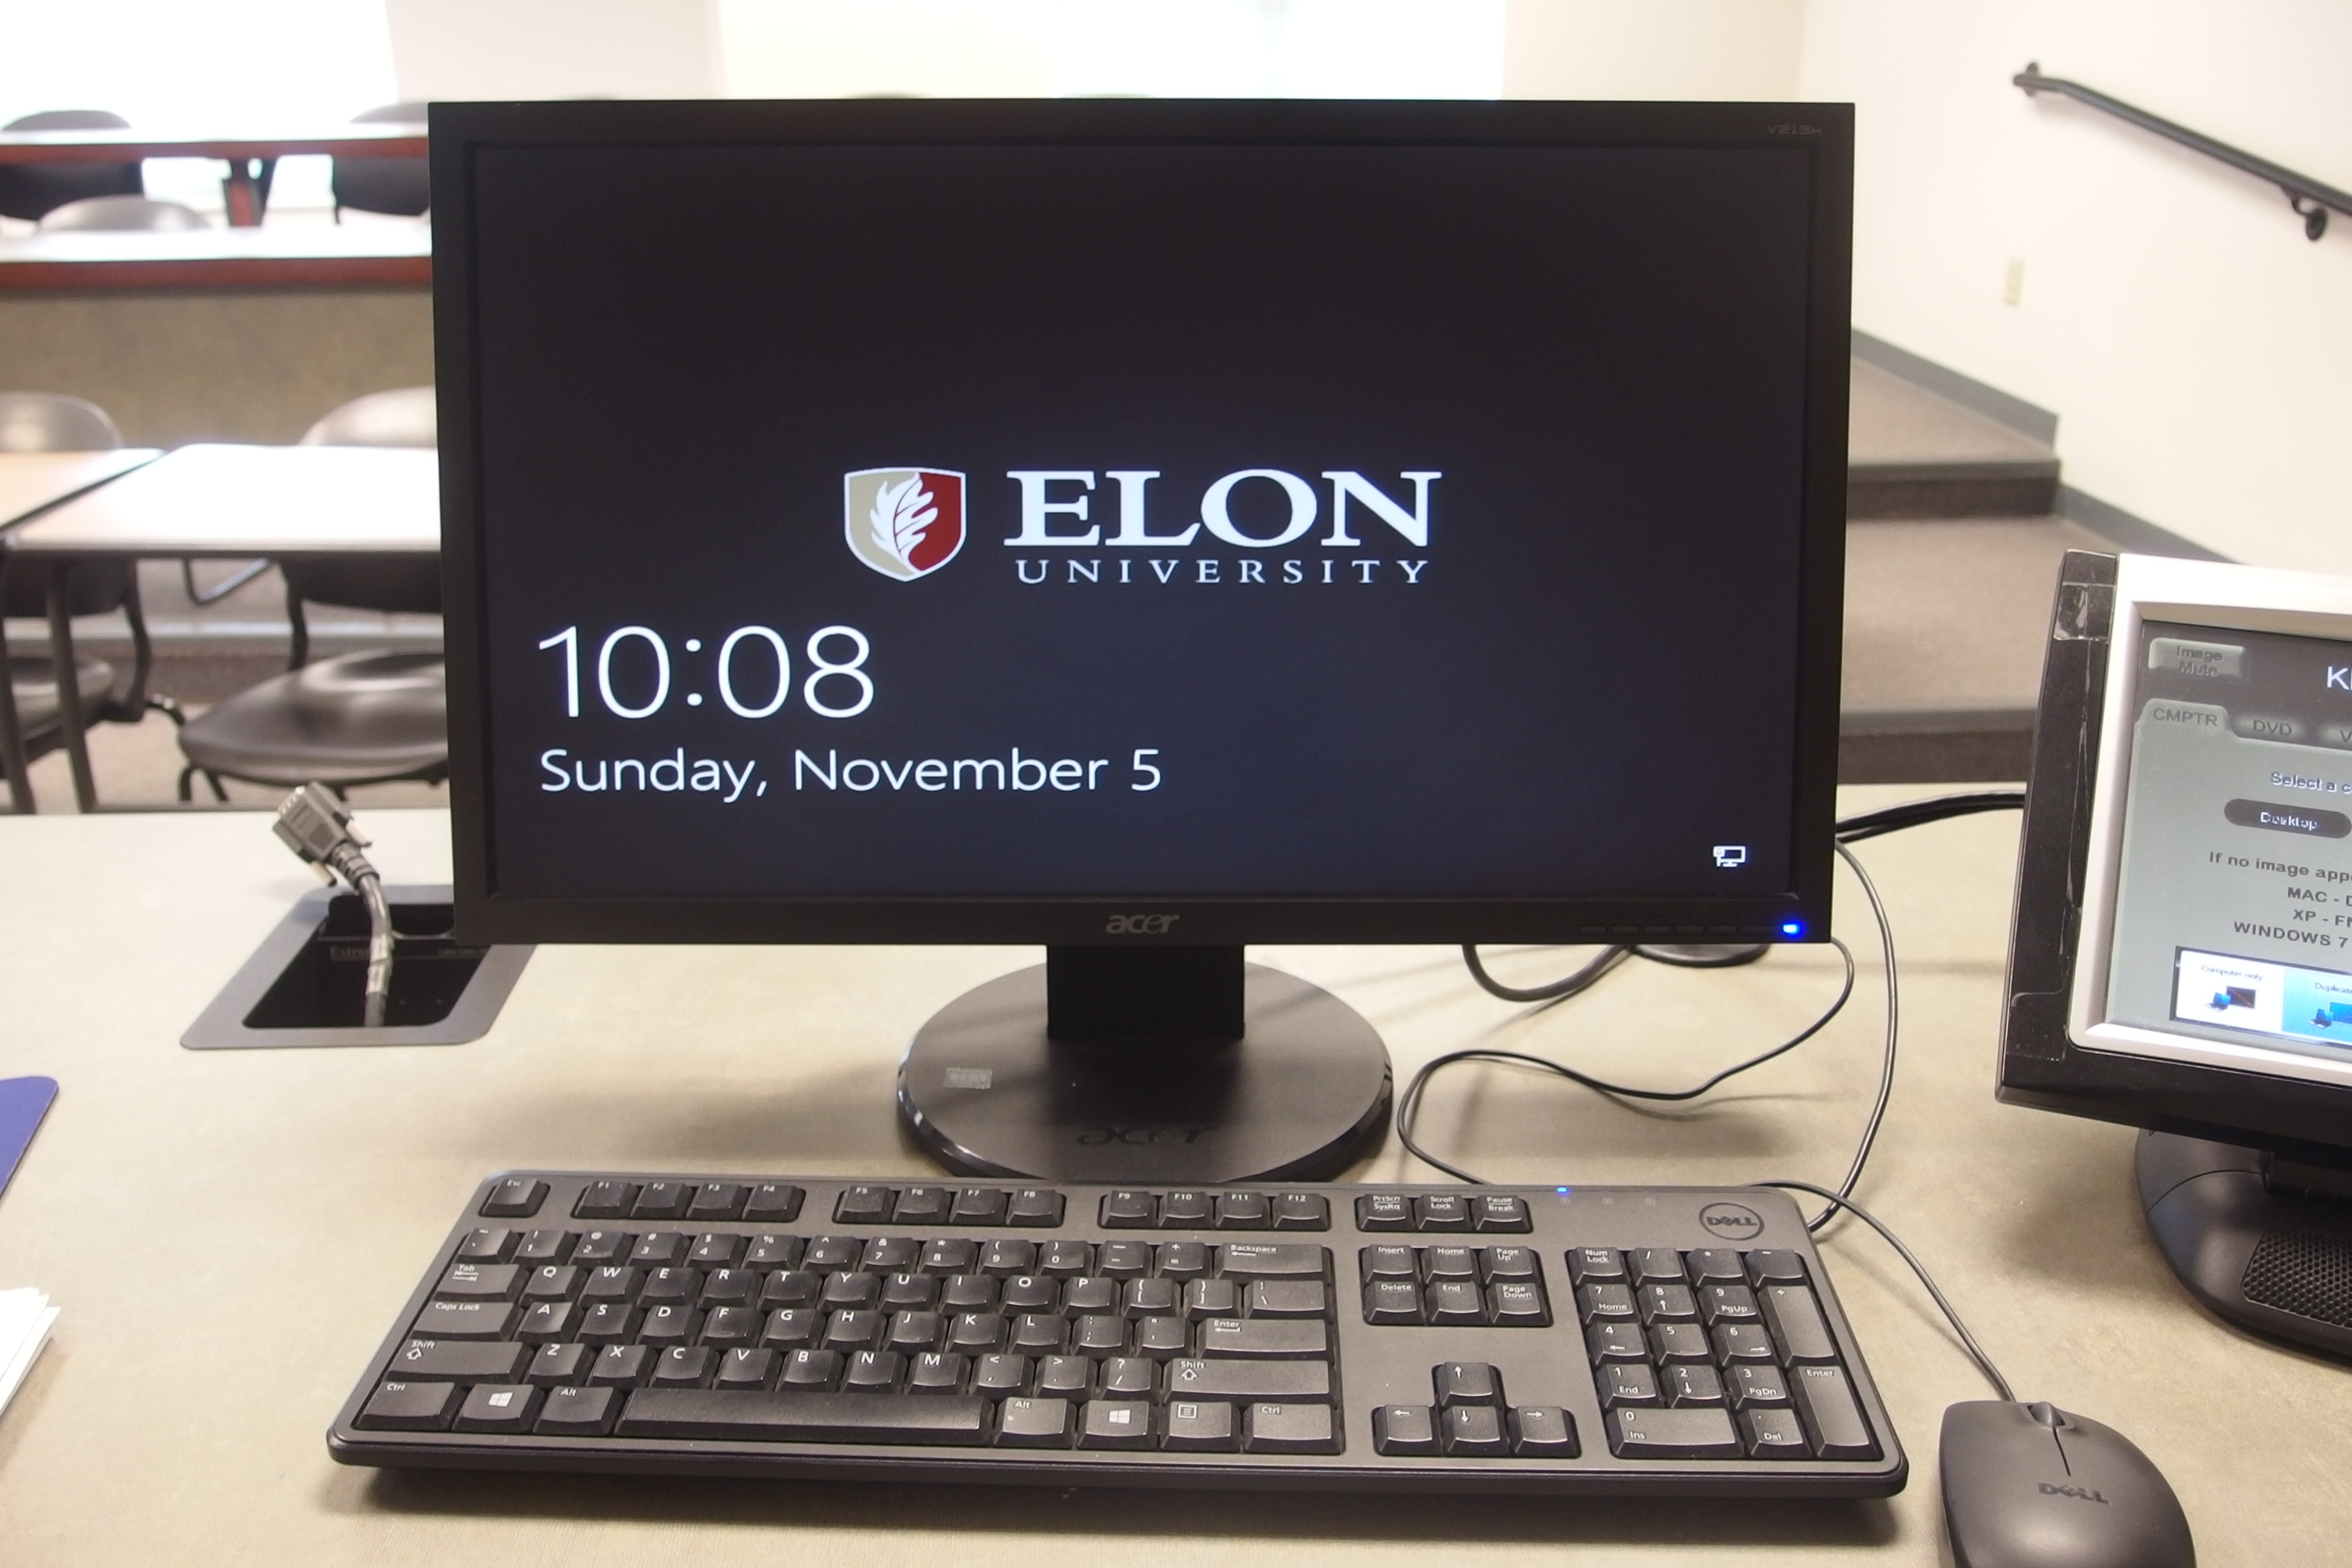 Photo of the dell desktop computer installed at the instructor's station